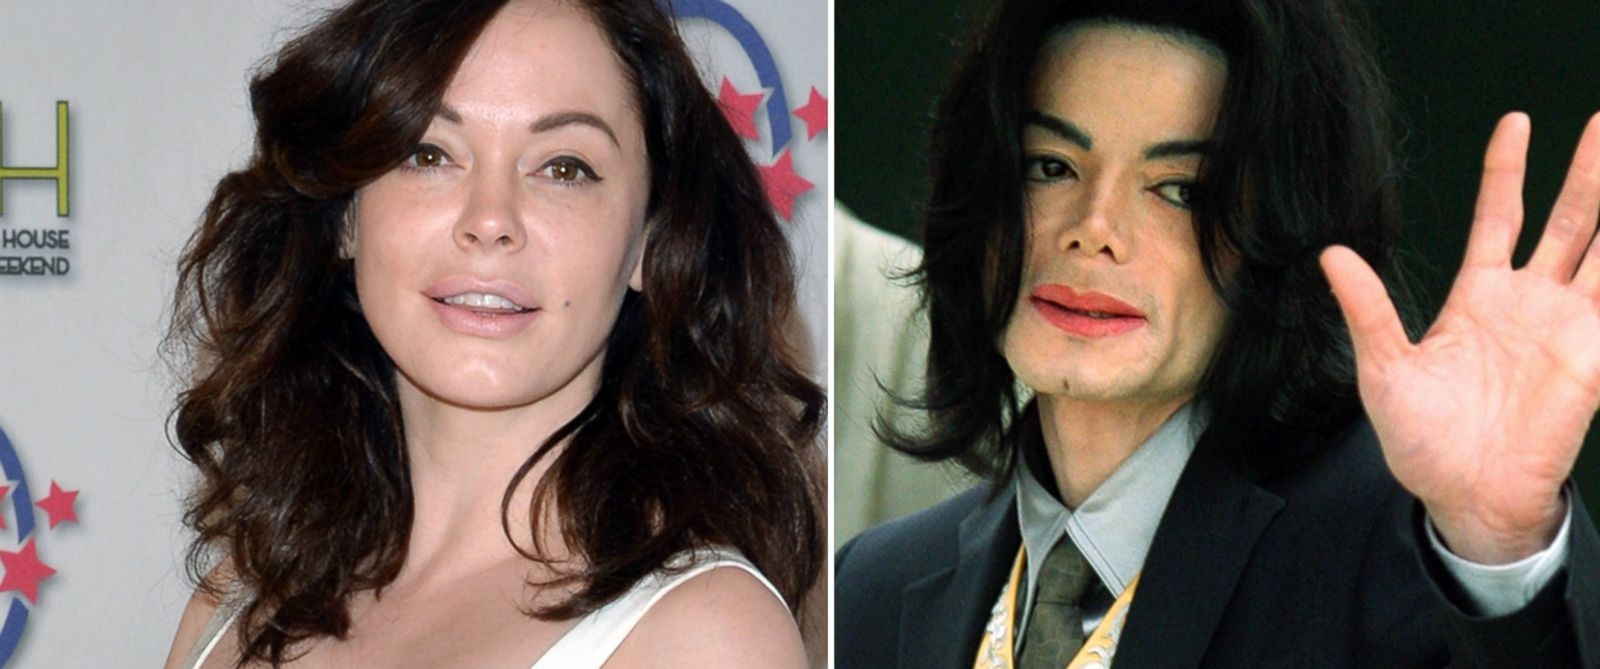 PHOTO: Rose McGowan, left, at the 2014 Annual Garden Brunch on May 3, 2014 in Washington, DC, and Michael Jackson, right, in Santa Maria, California on May 25, 2005.